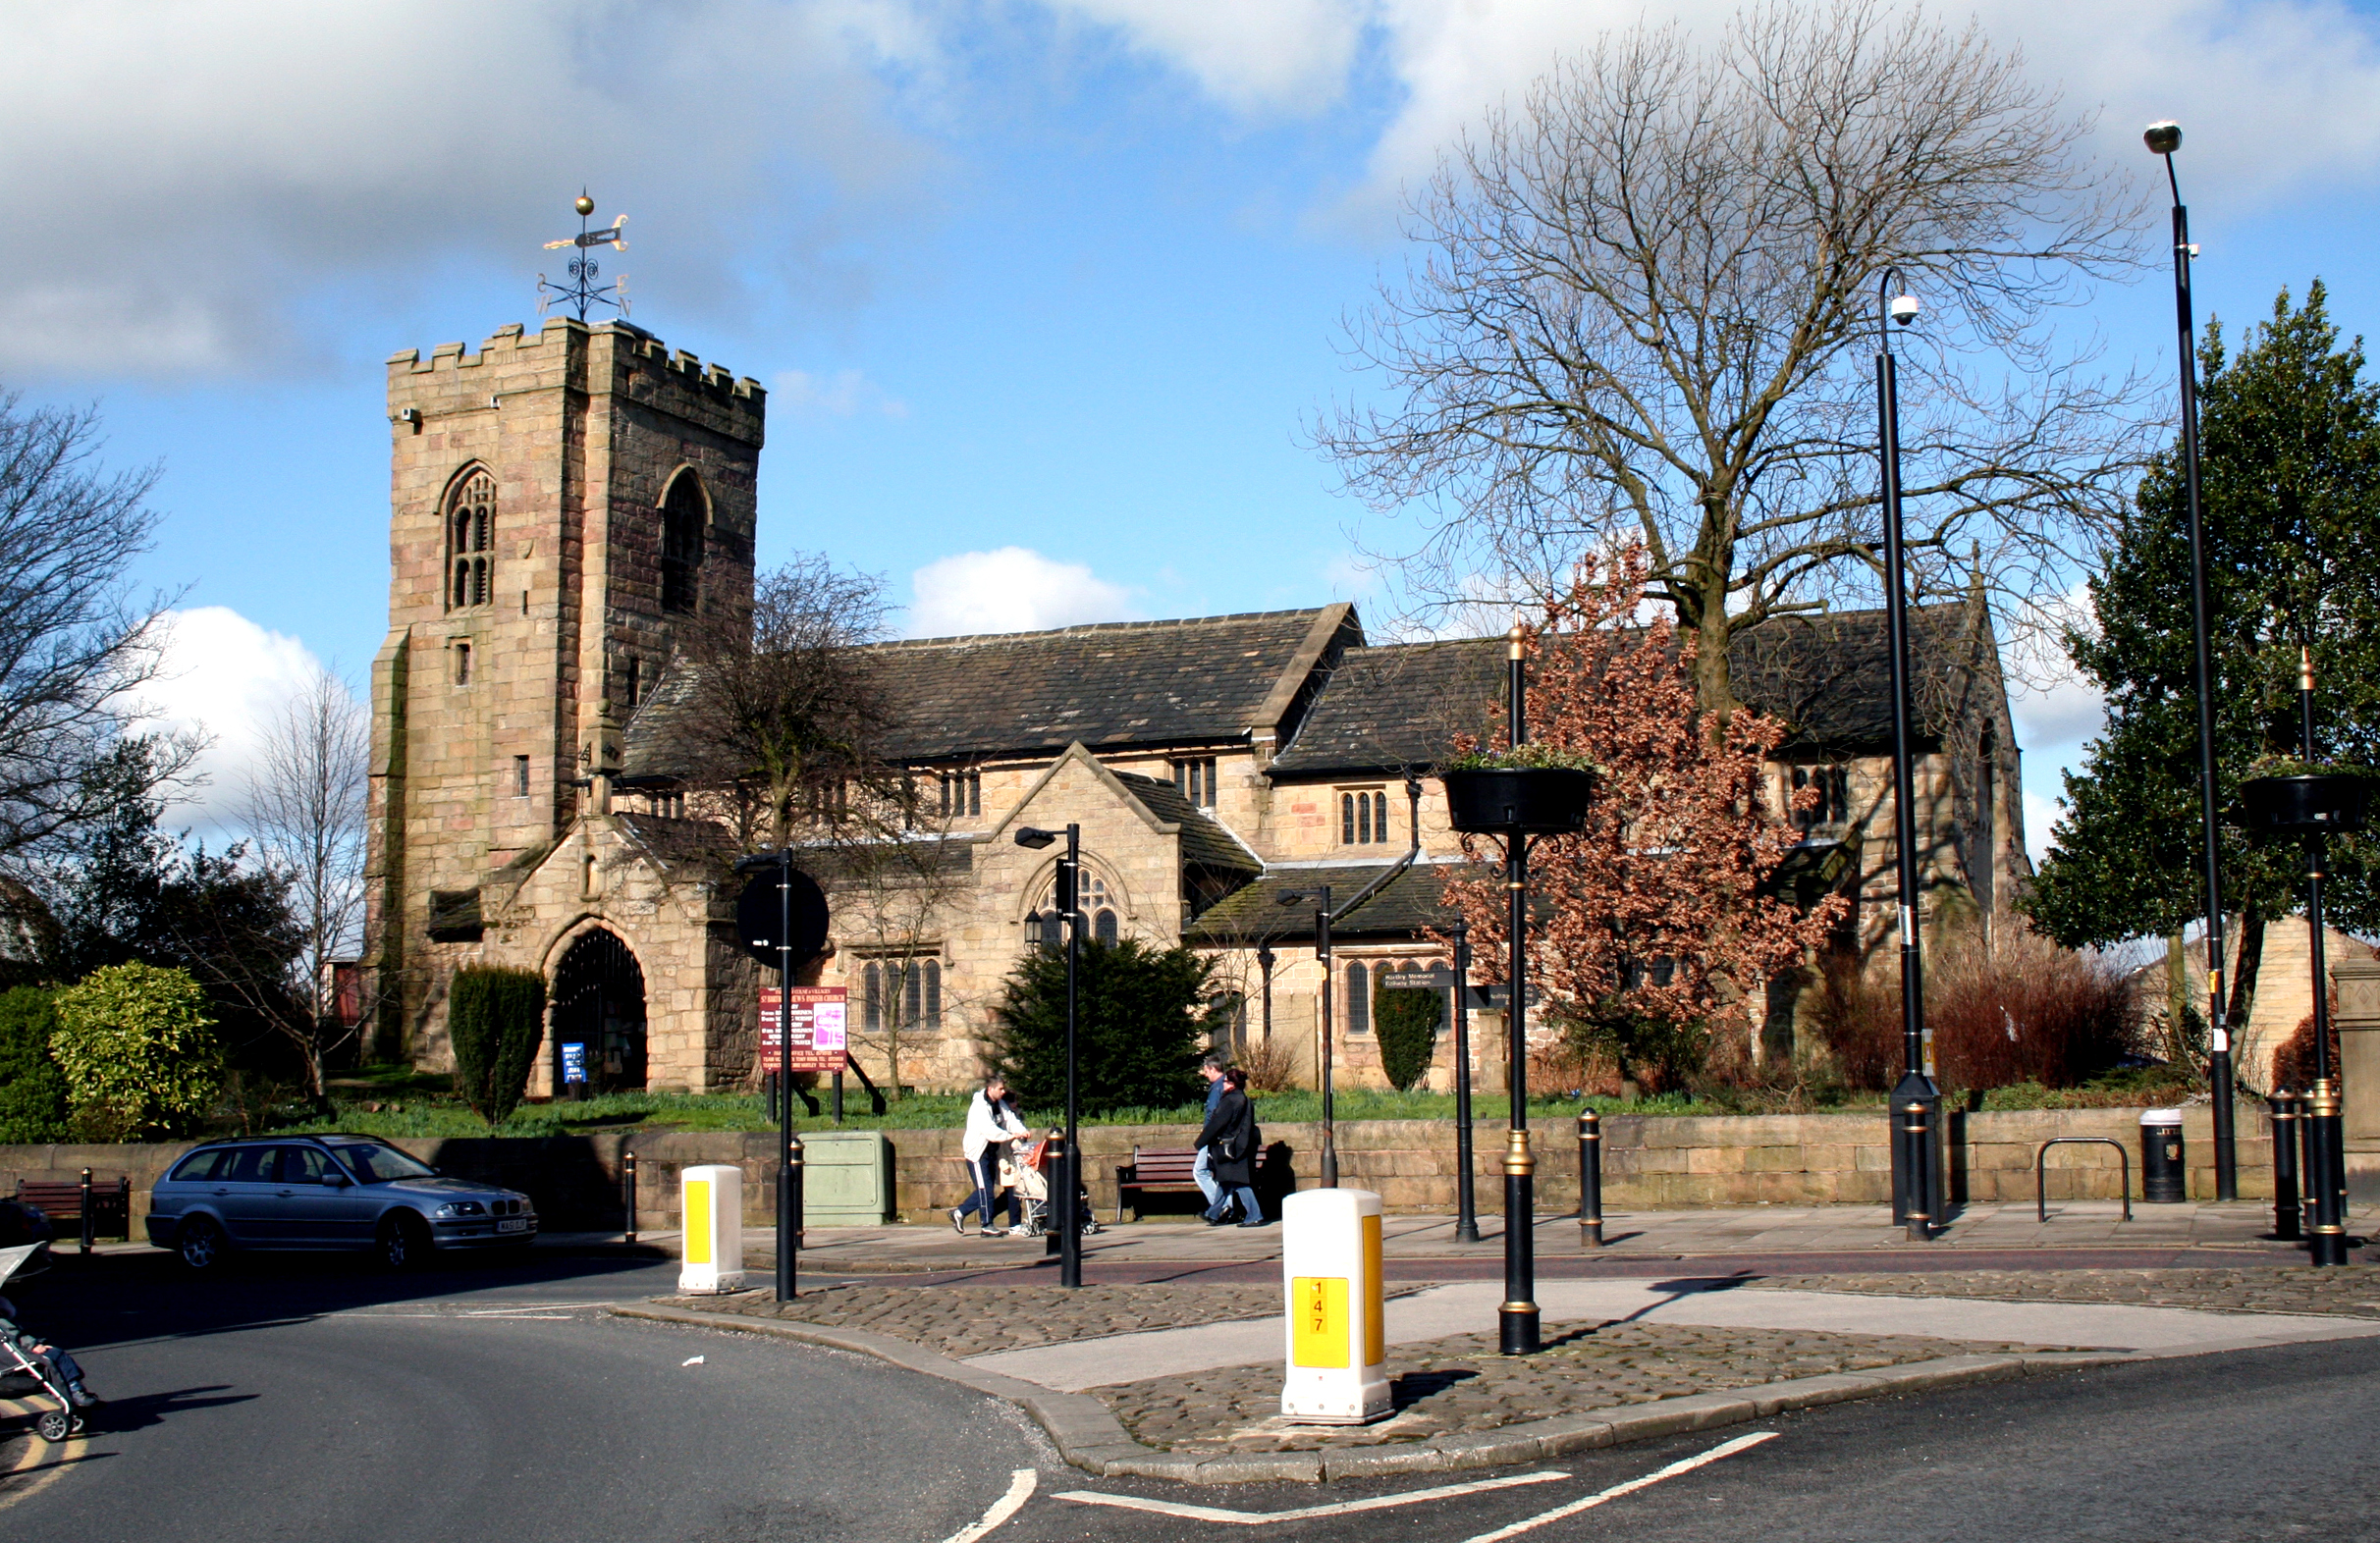 Parish Church of St. Bartholomew, Colne, Lancashire - geograph.org.uk - 1730205.jpg